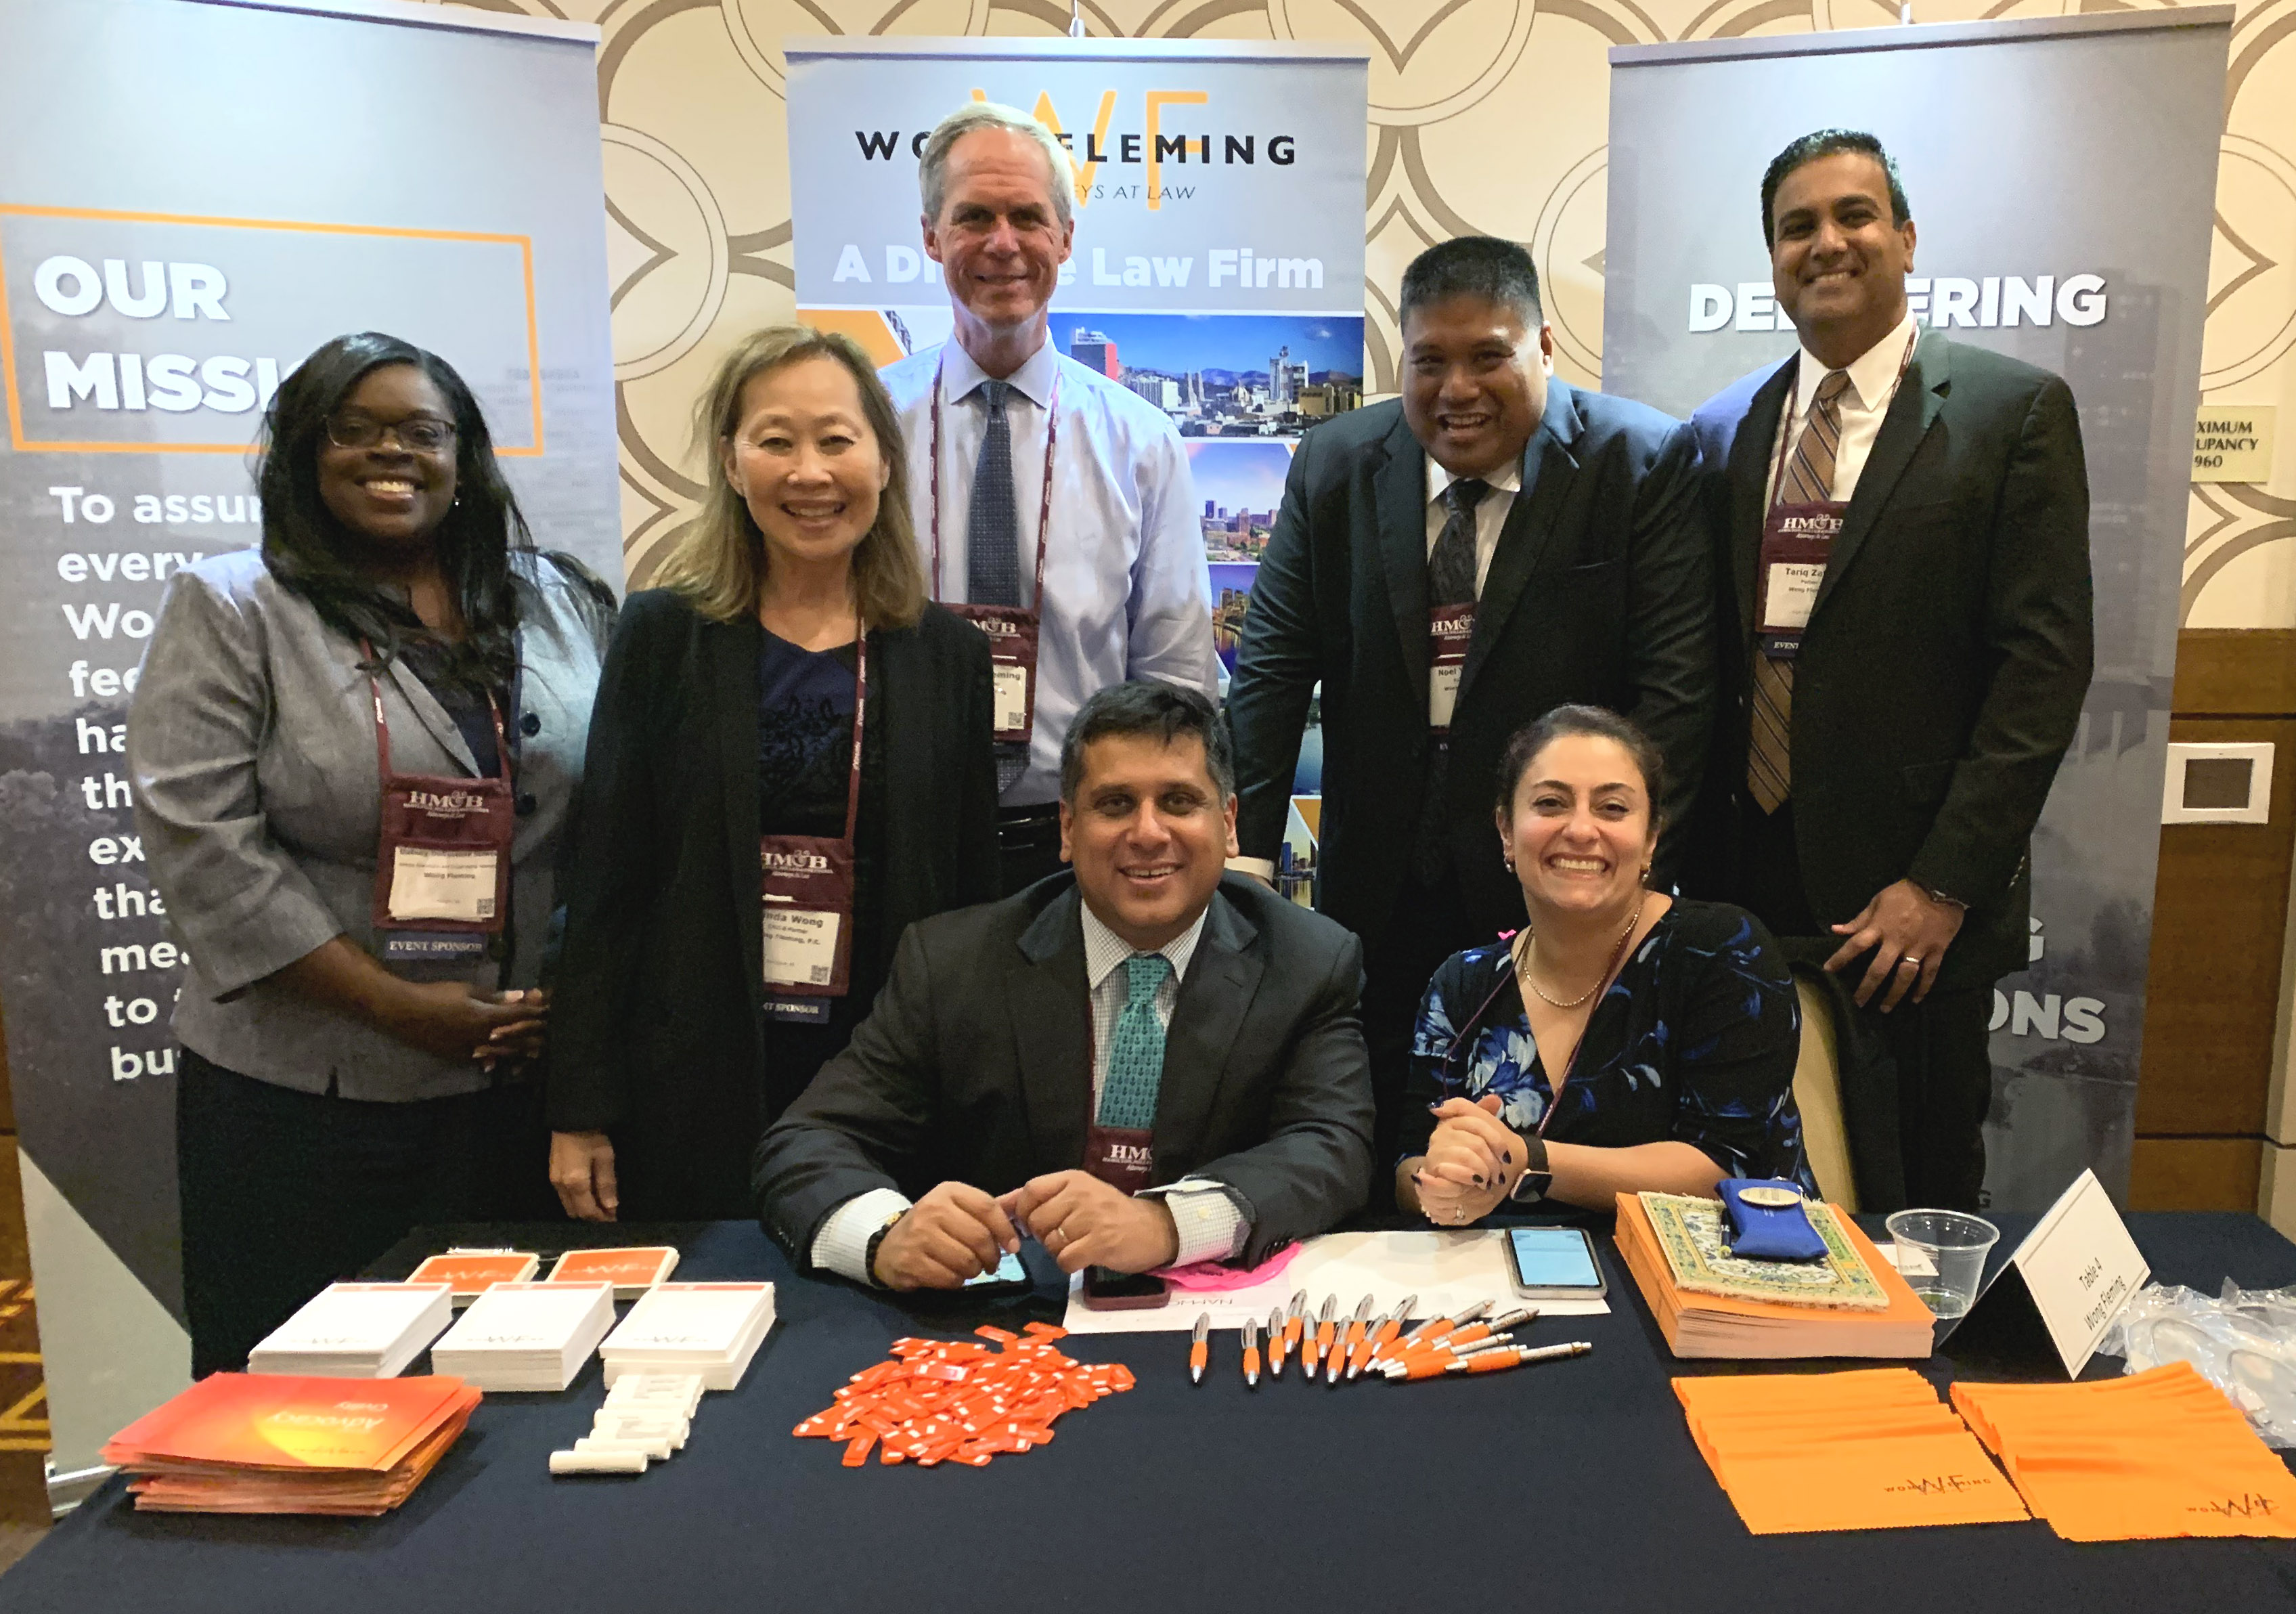 Wong Fleming table at NAMWOLF Annual Meeting and Law Firm Expo 2019